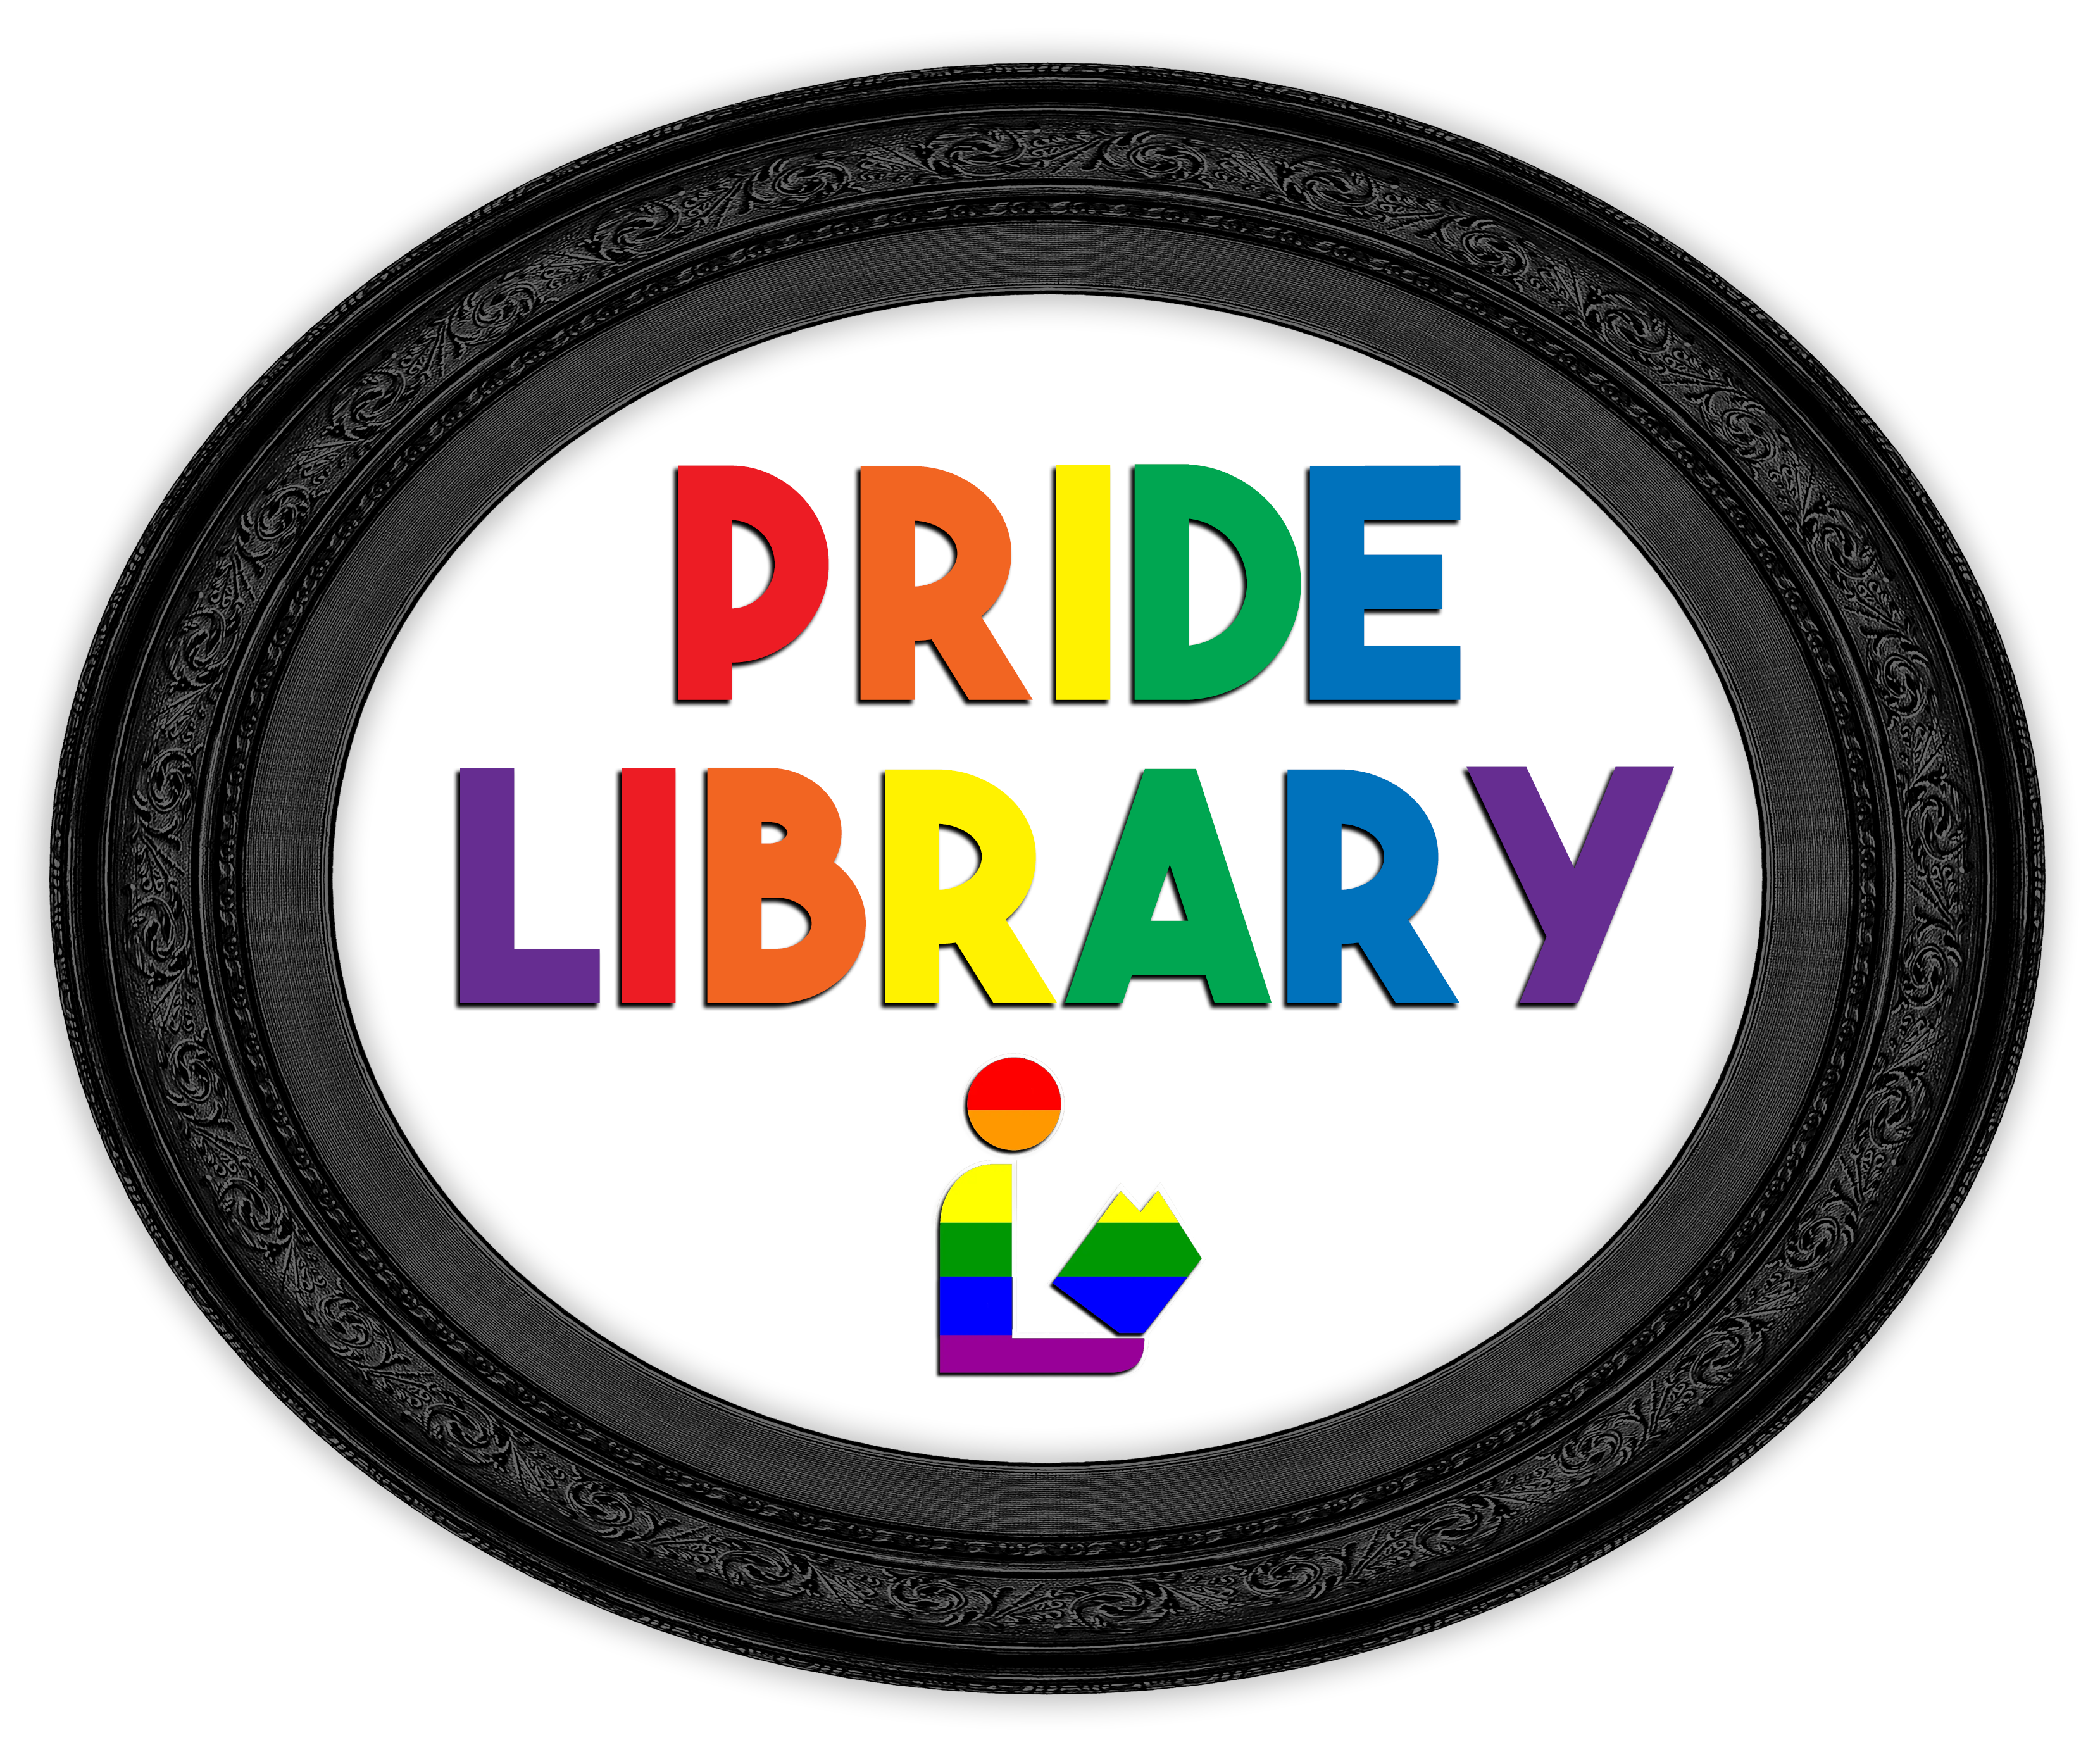 This framed image is a link to Hafuboti's Pride Library designs.